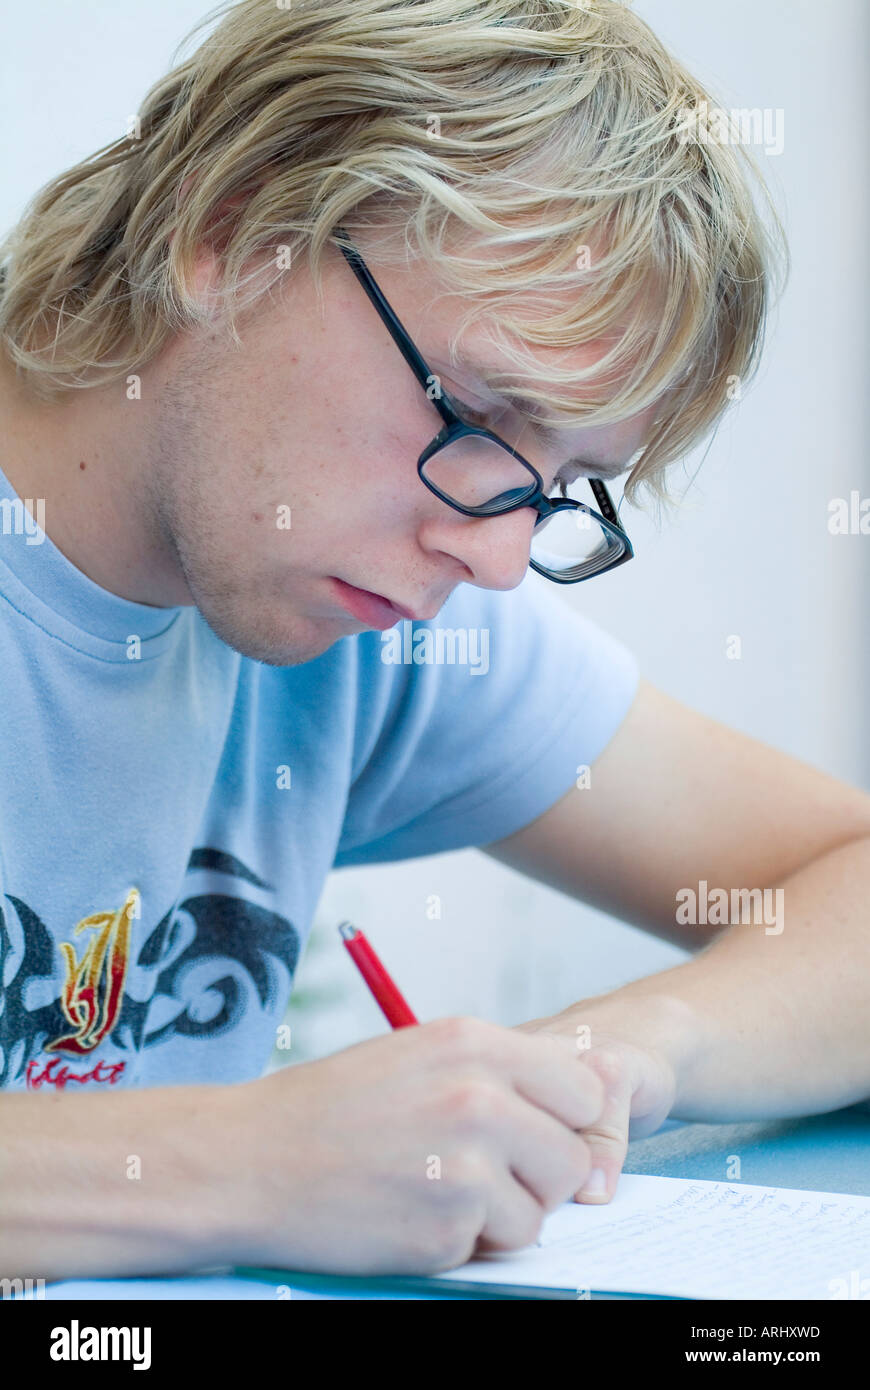 young man student by learning studying preparation for exams Stock Photo